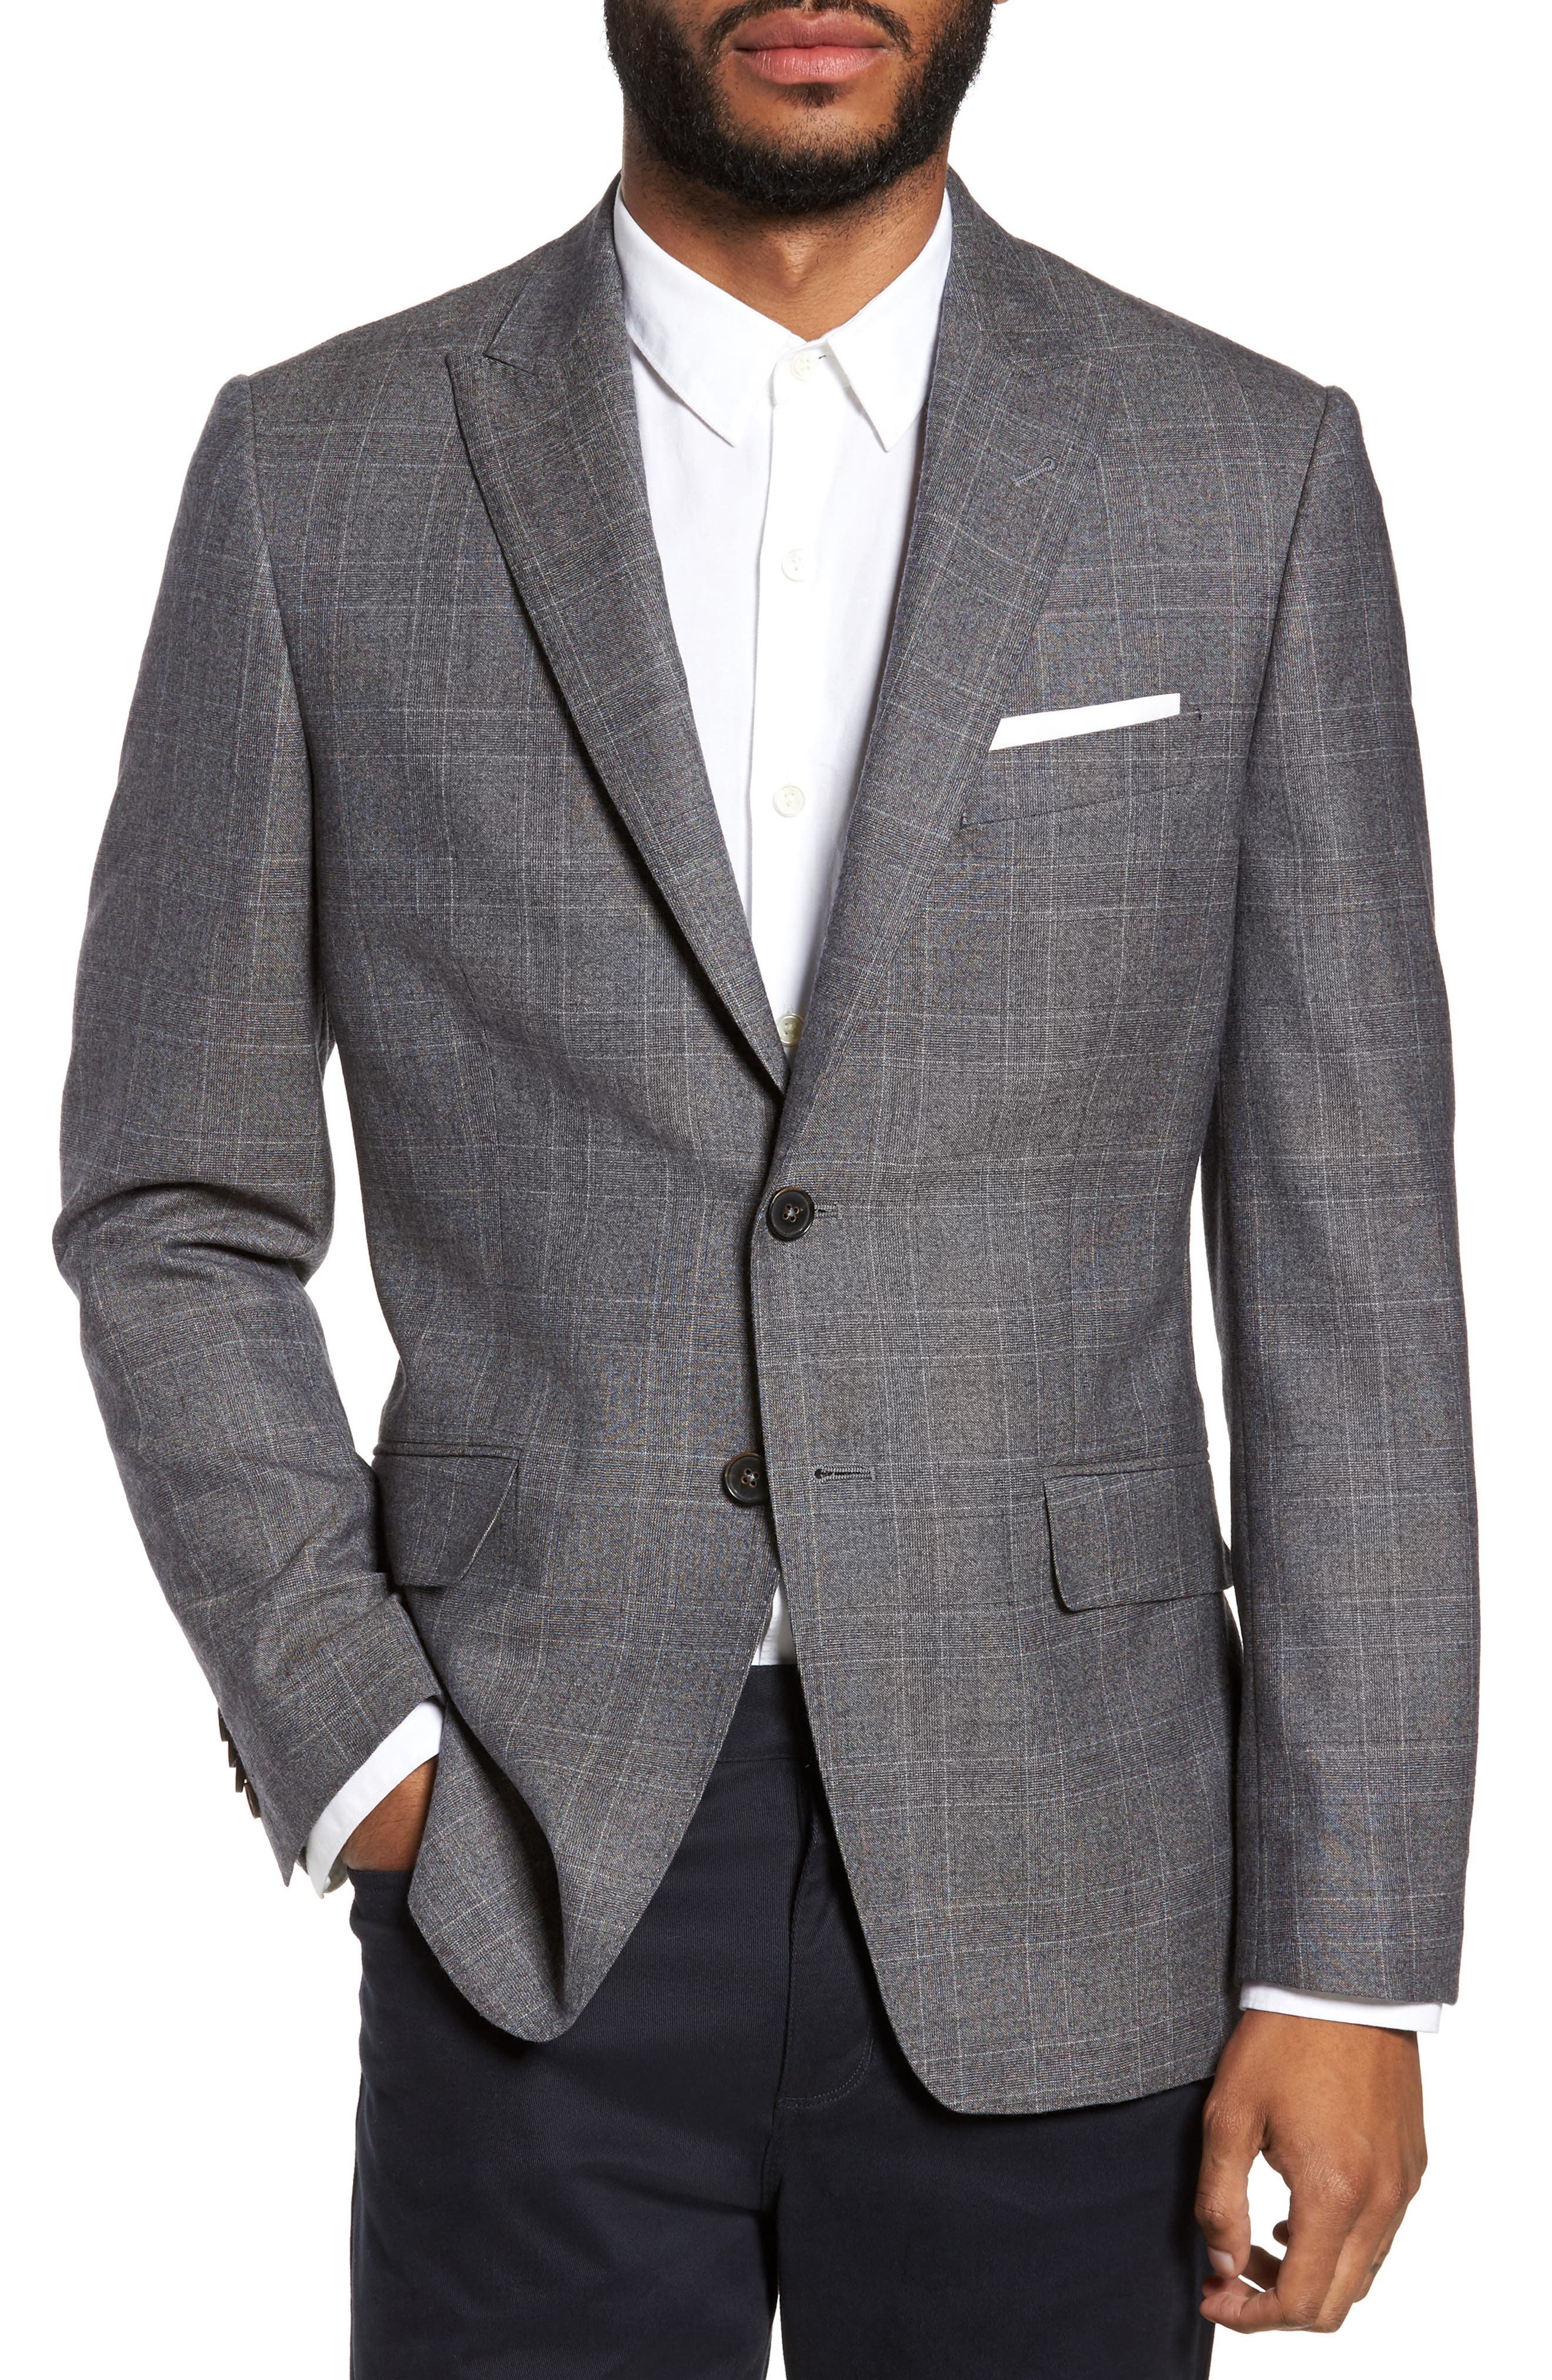 Gryning Trim Fit Plaid Wool Blend Sport Coat,                             Main thumbnail 1, color,                             Quiet Gray